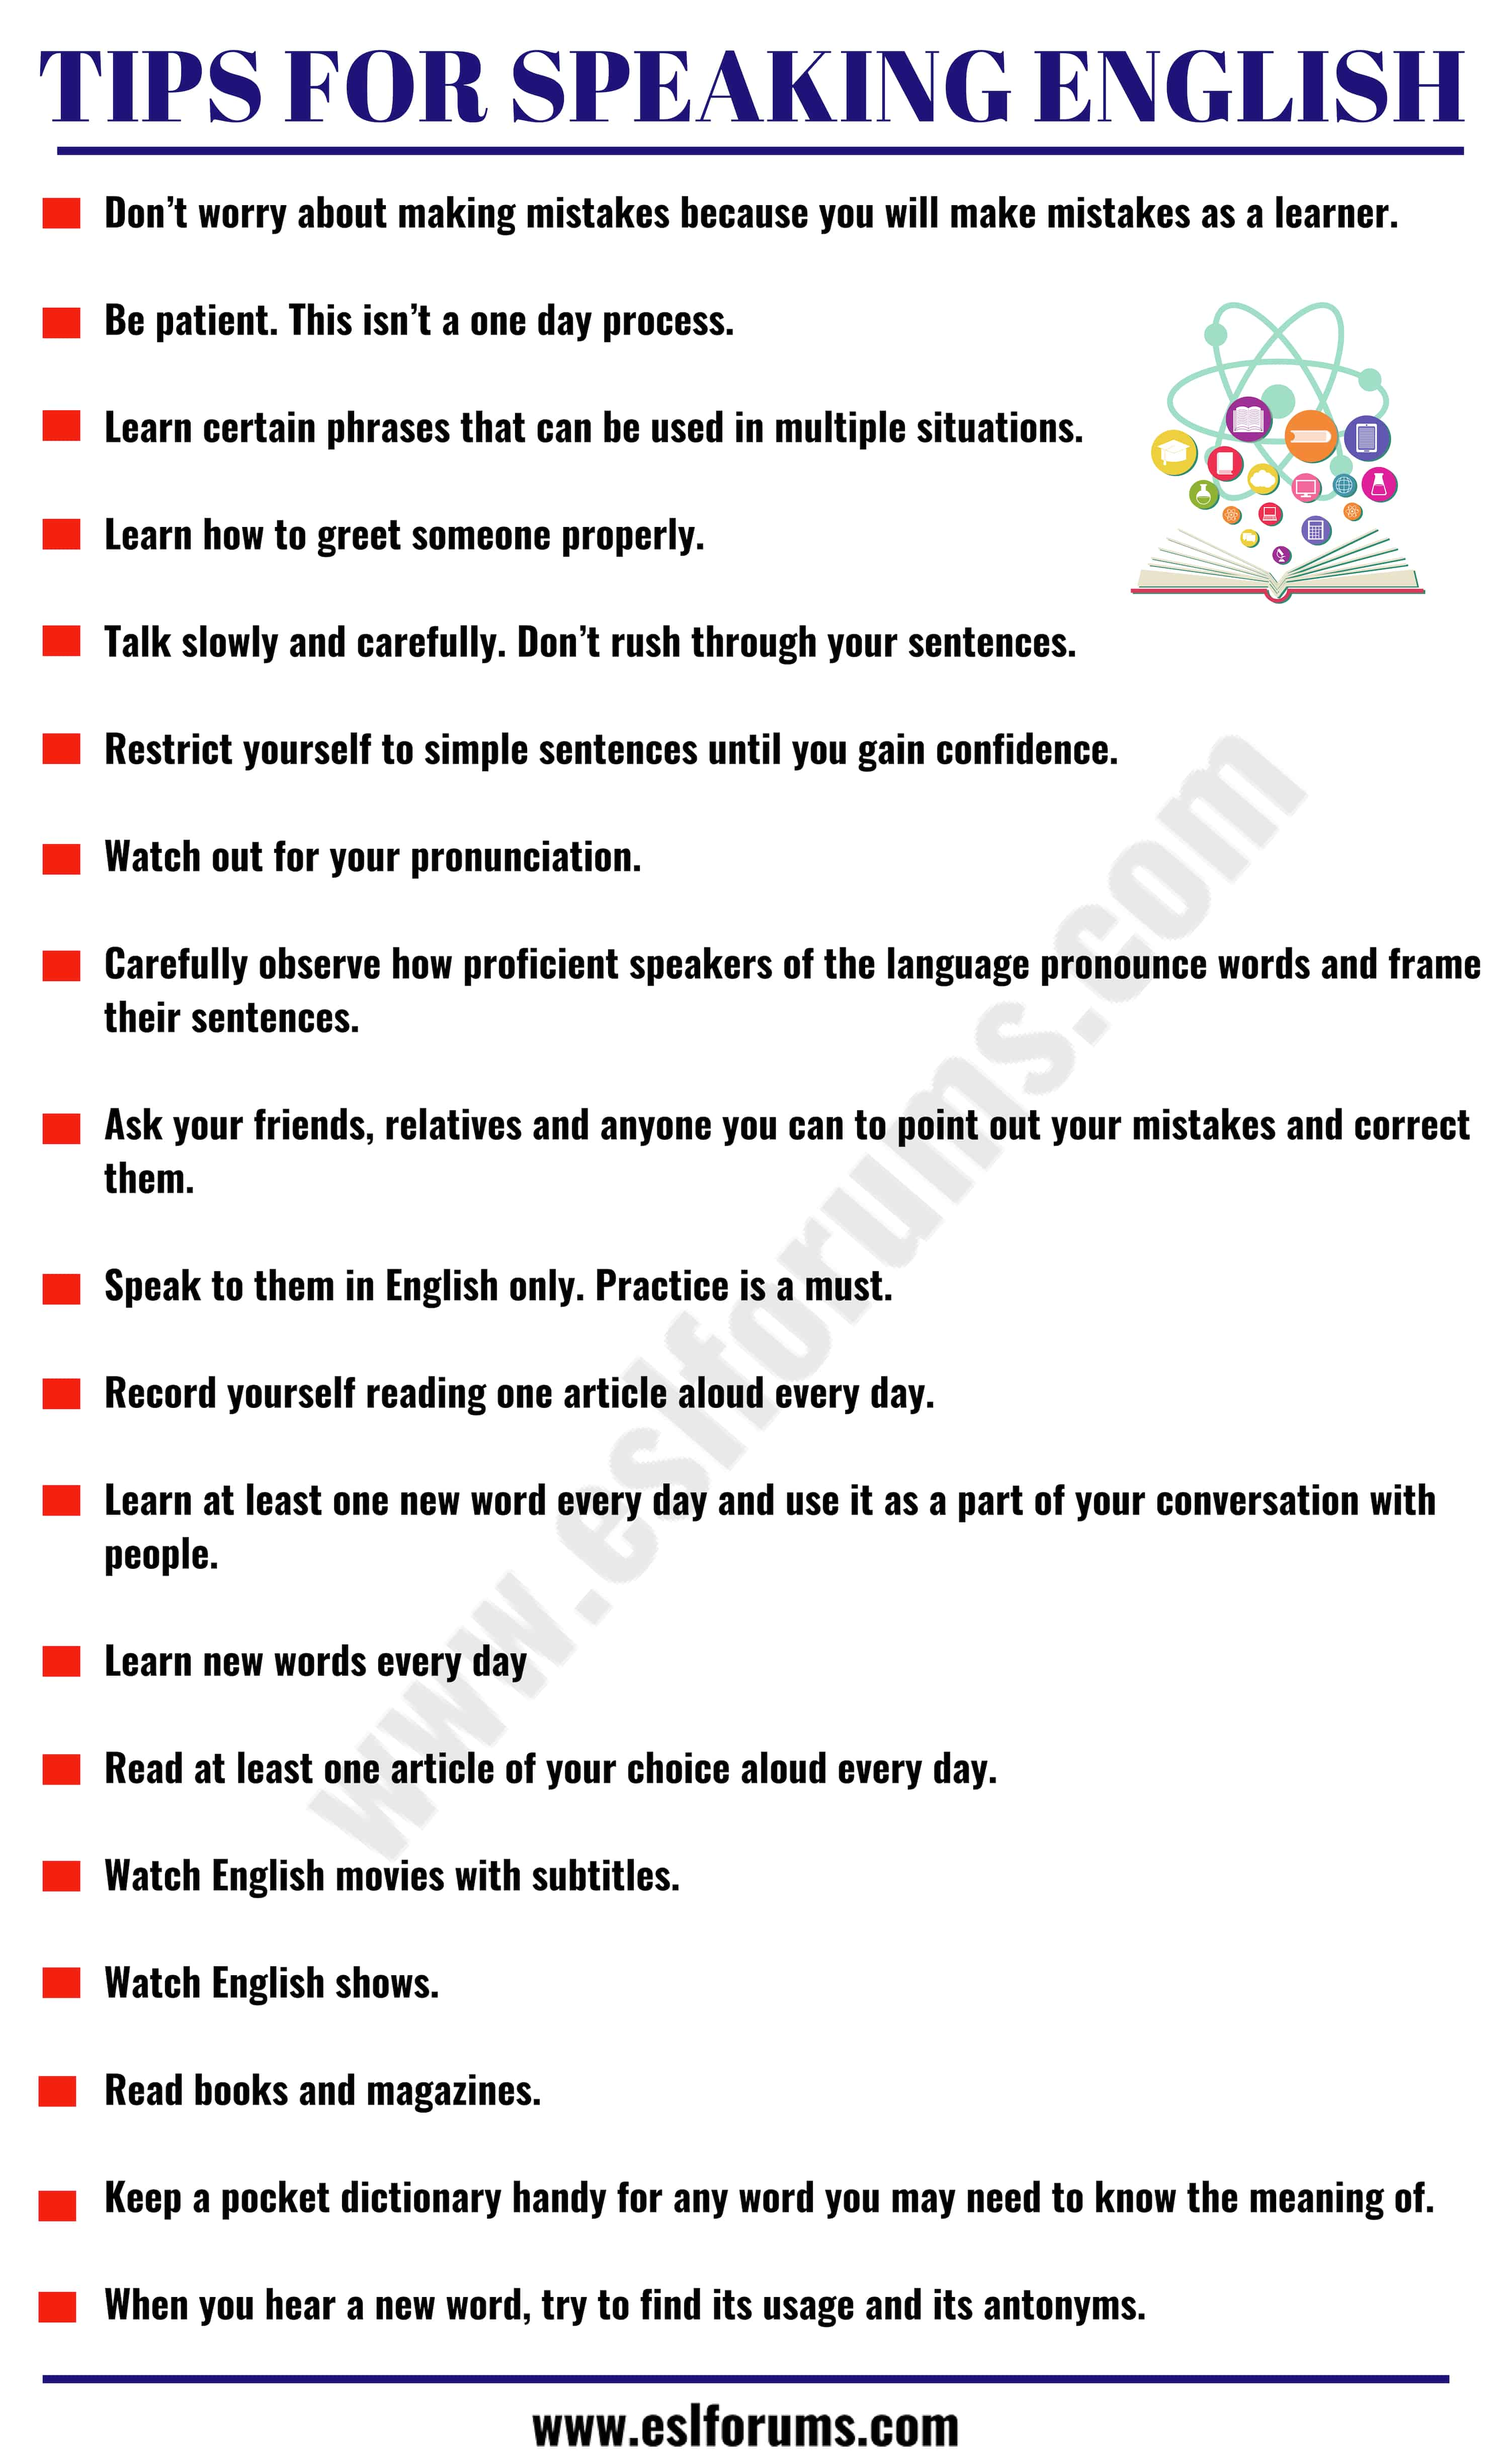 e-book HOW to SPEAK ENGLISH WELL - Know your antonyms (HOW